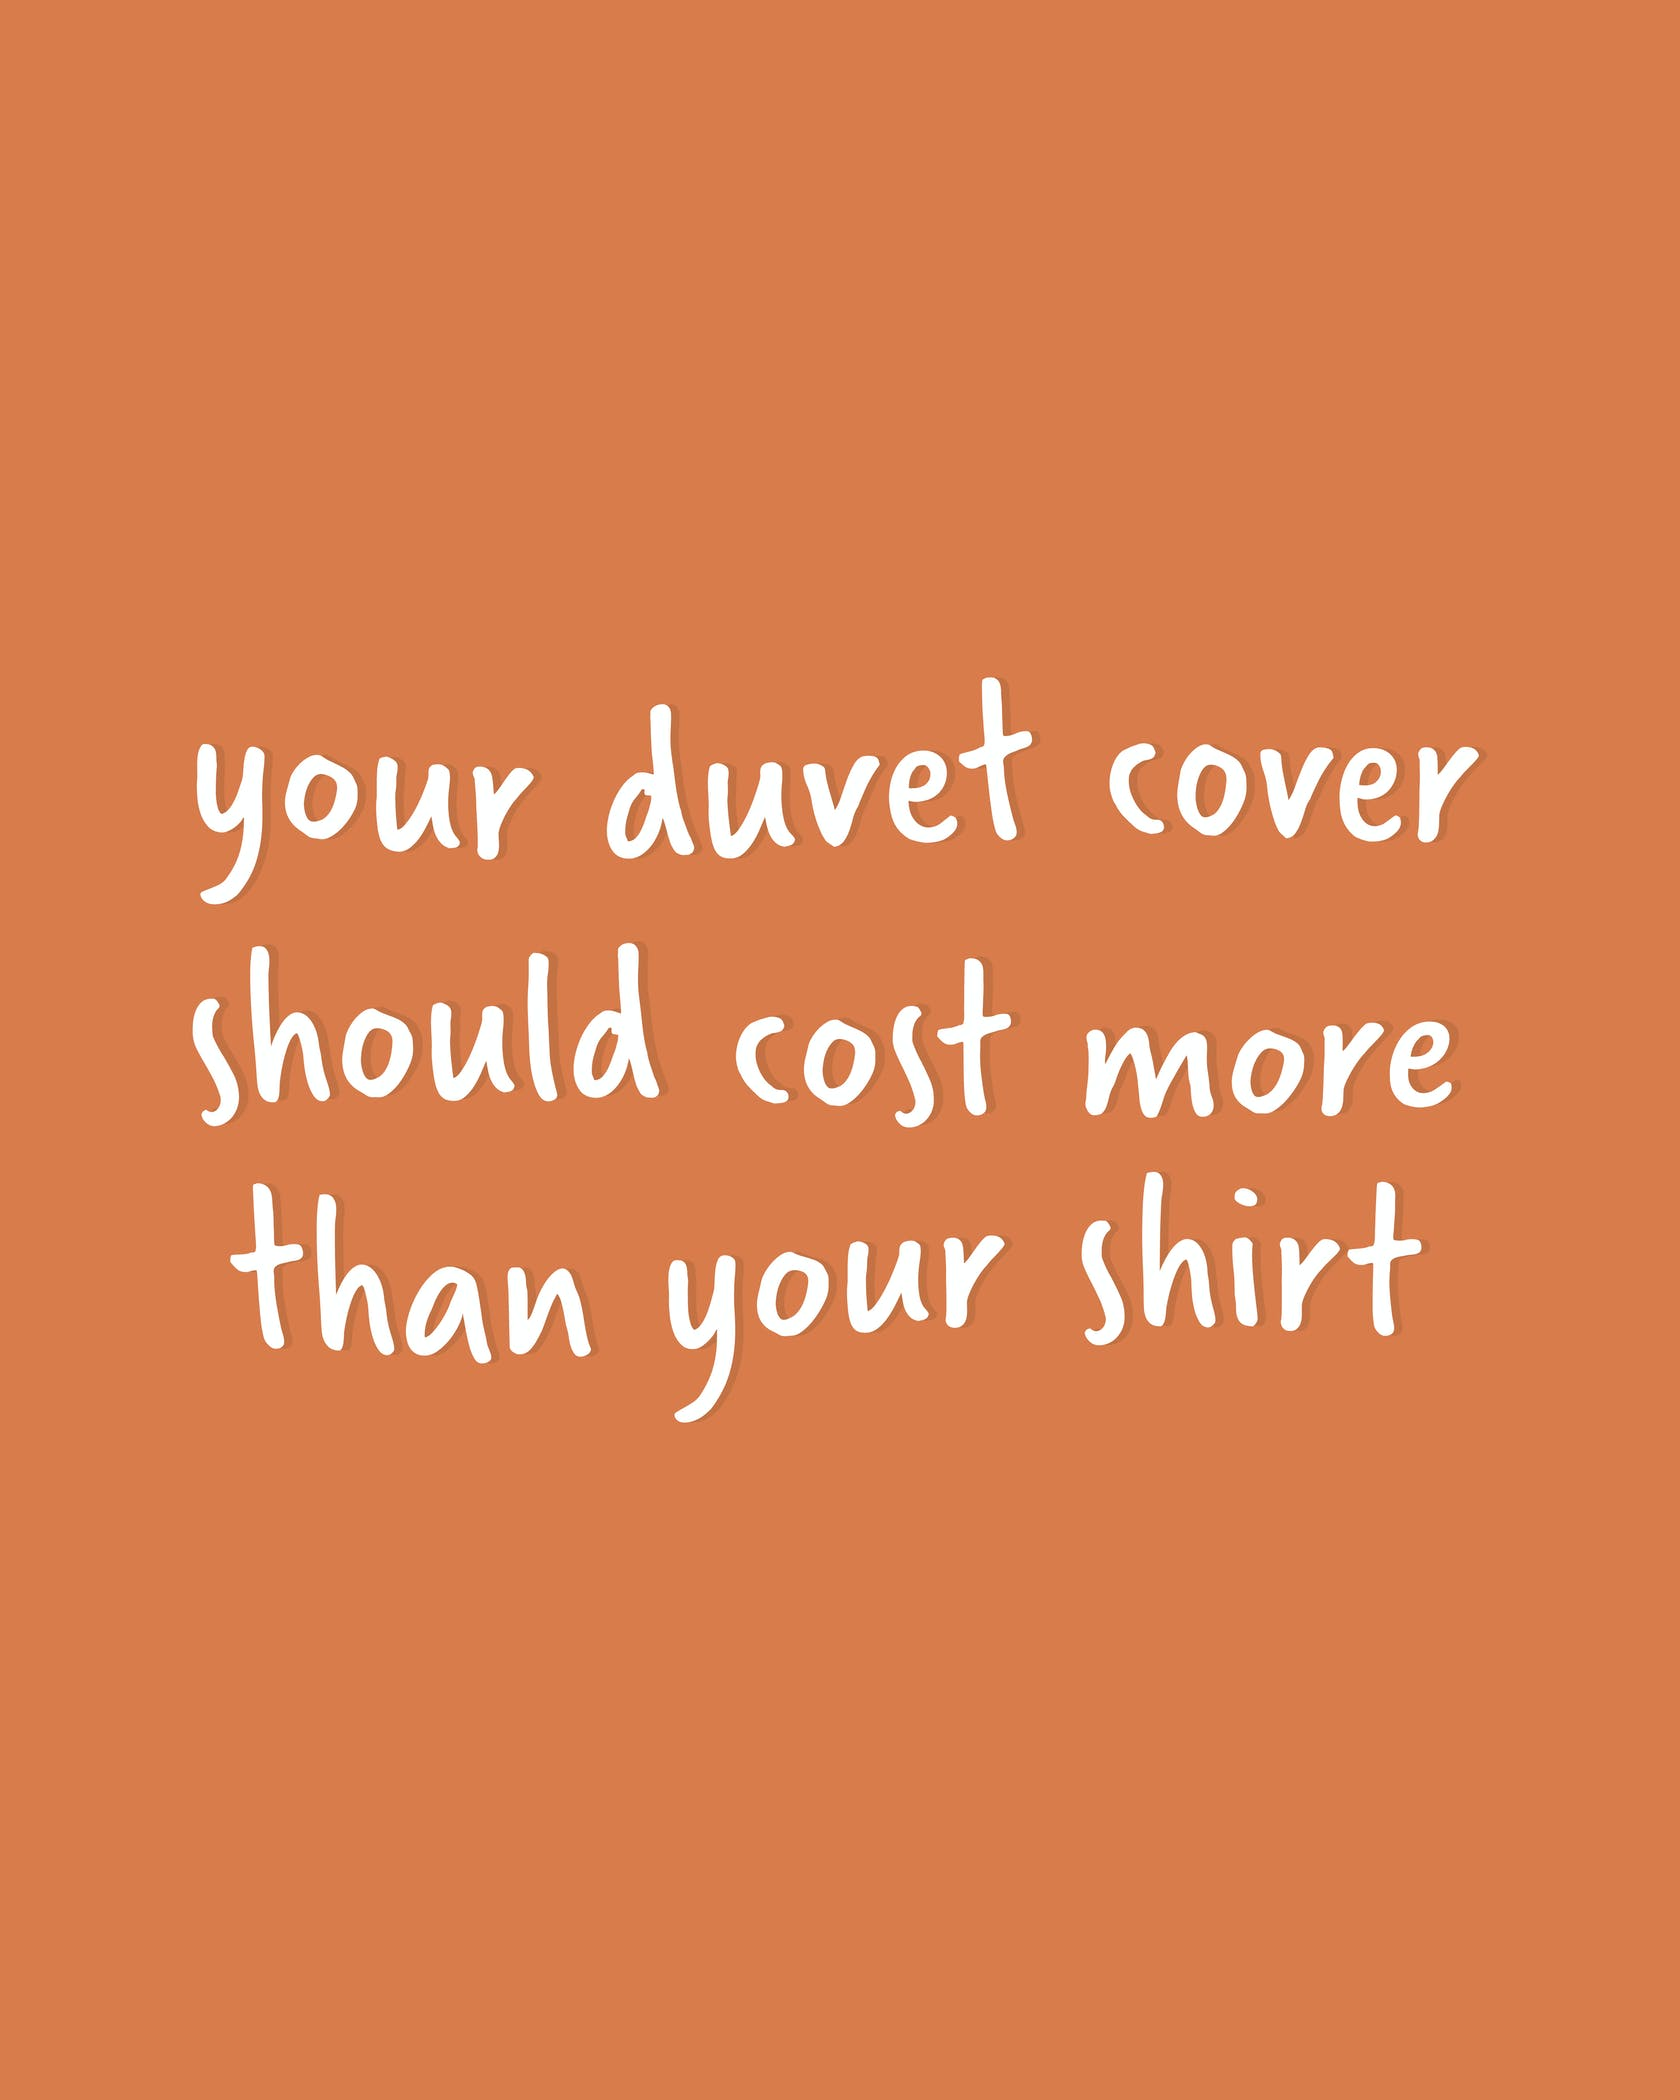 Your duvet cover should cost more than your shirt!